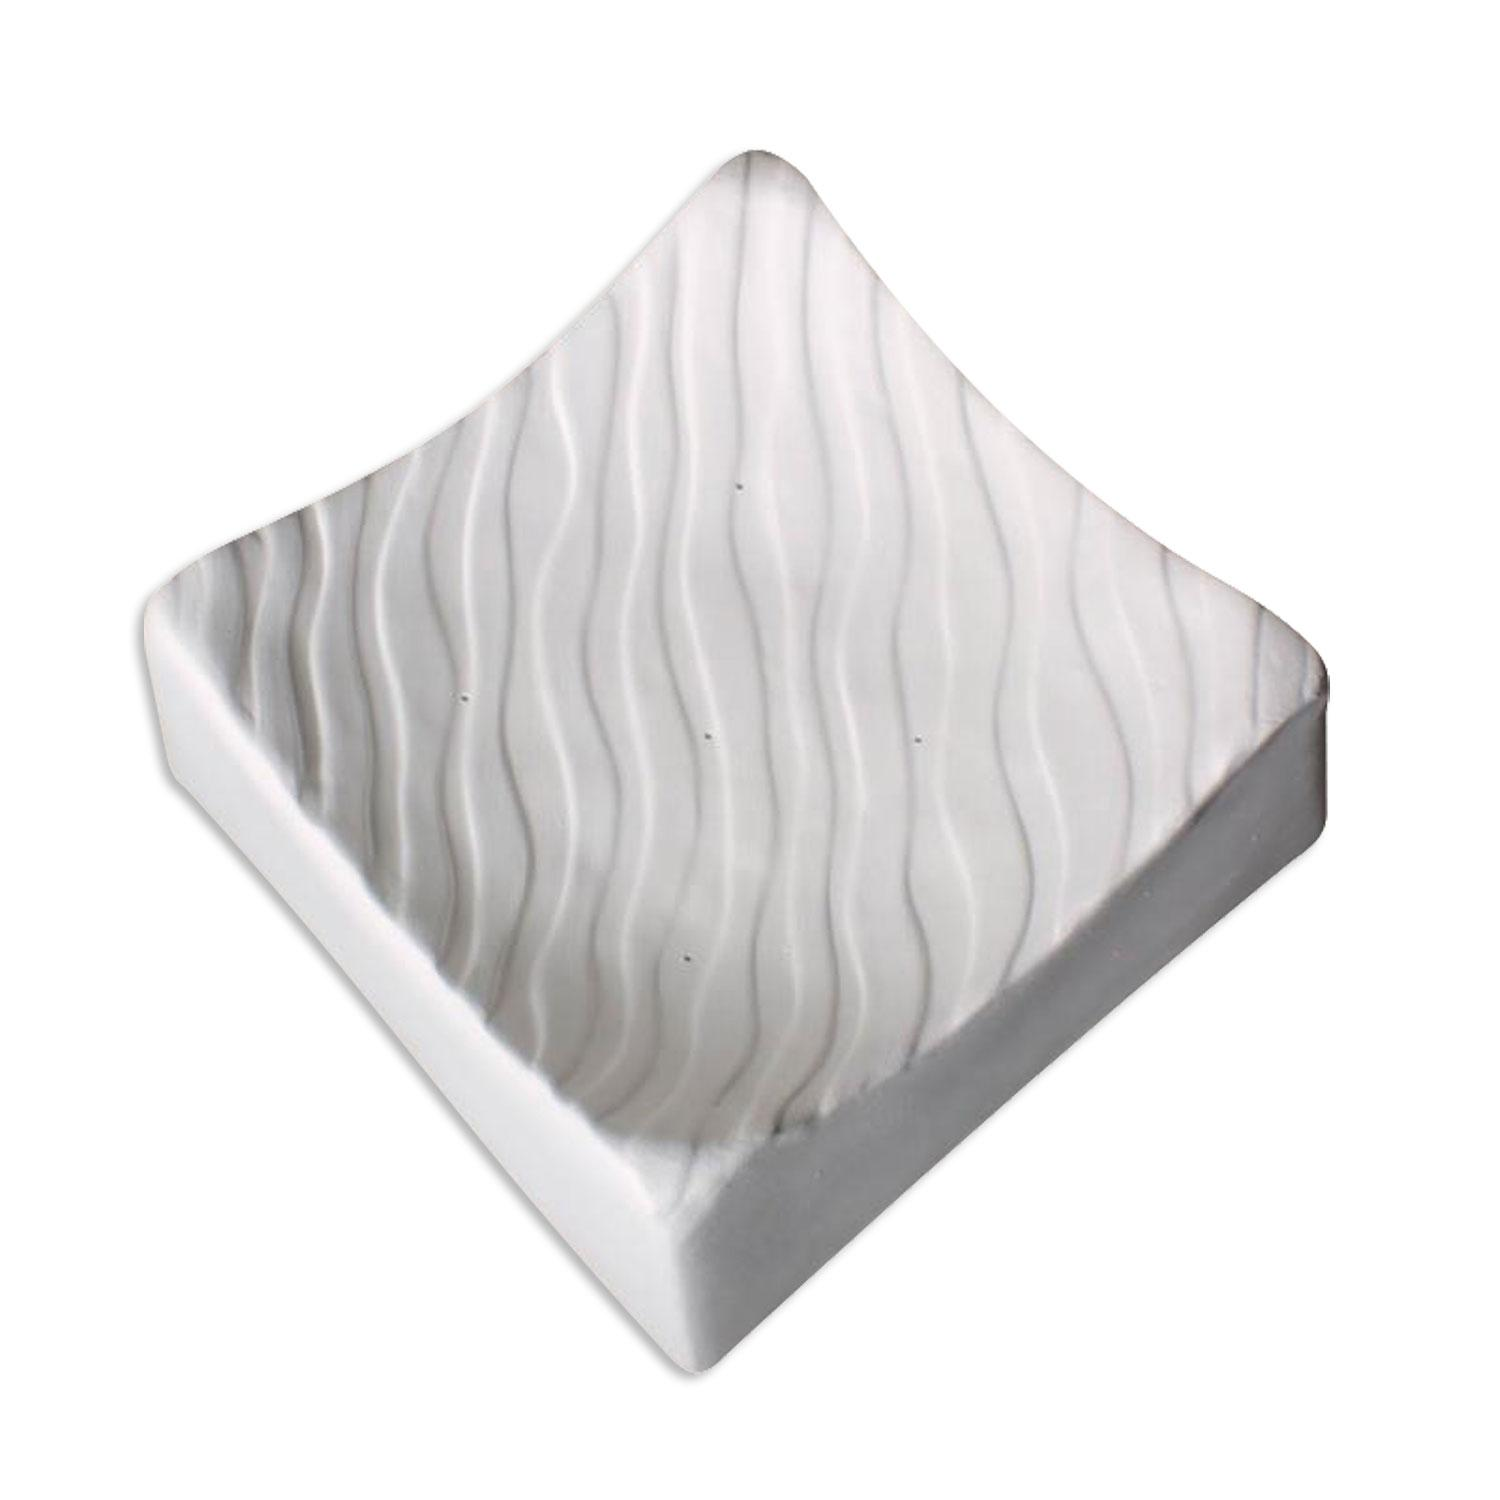 6-1/2 Square Wave Texture Mold